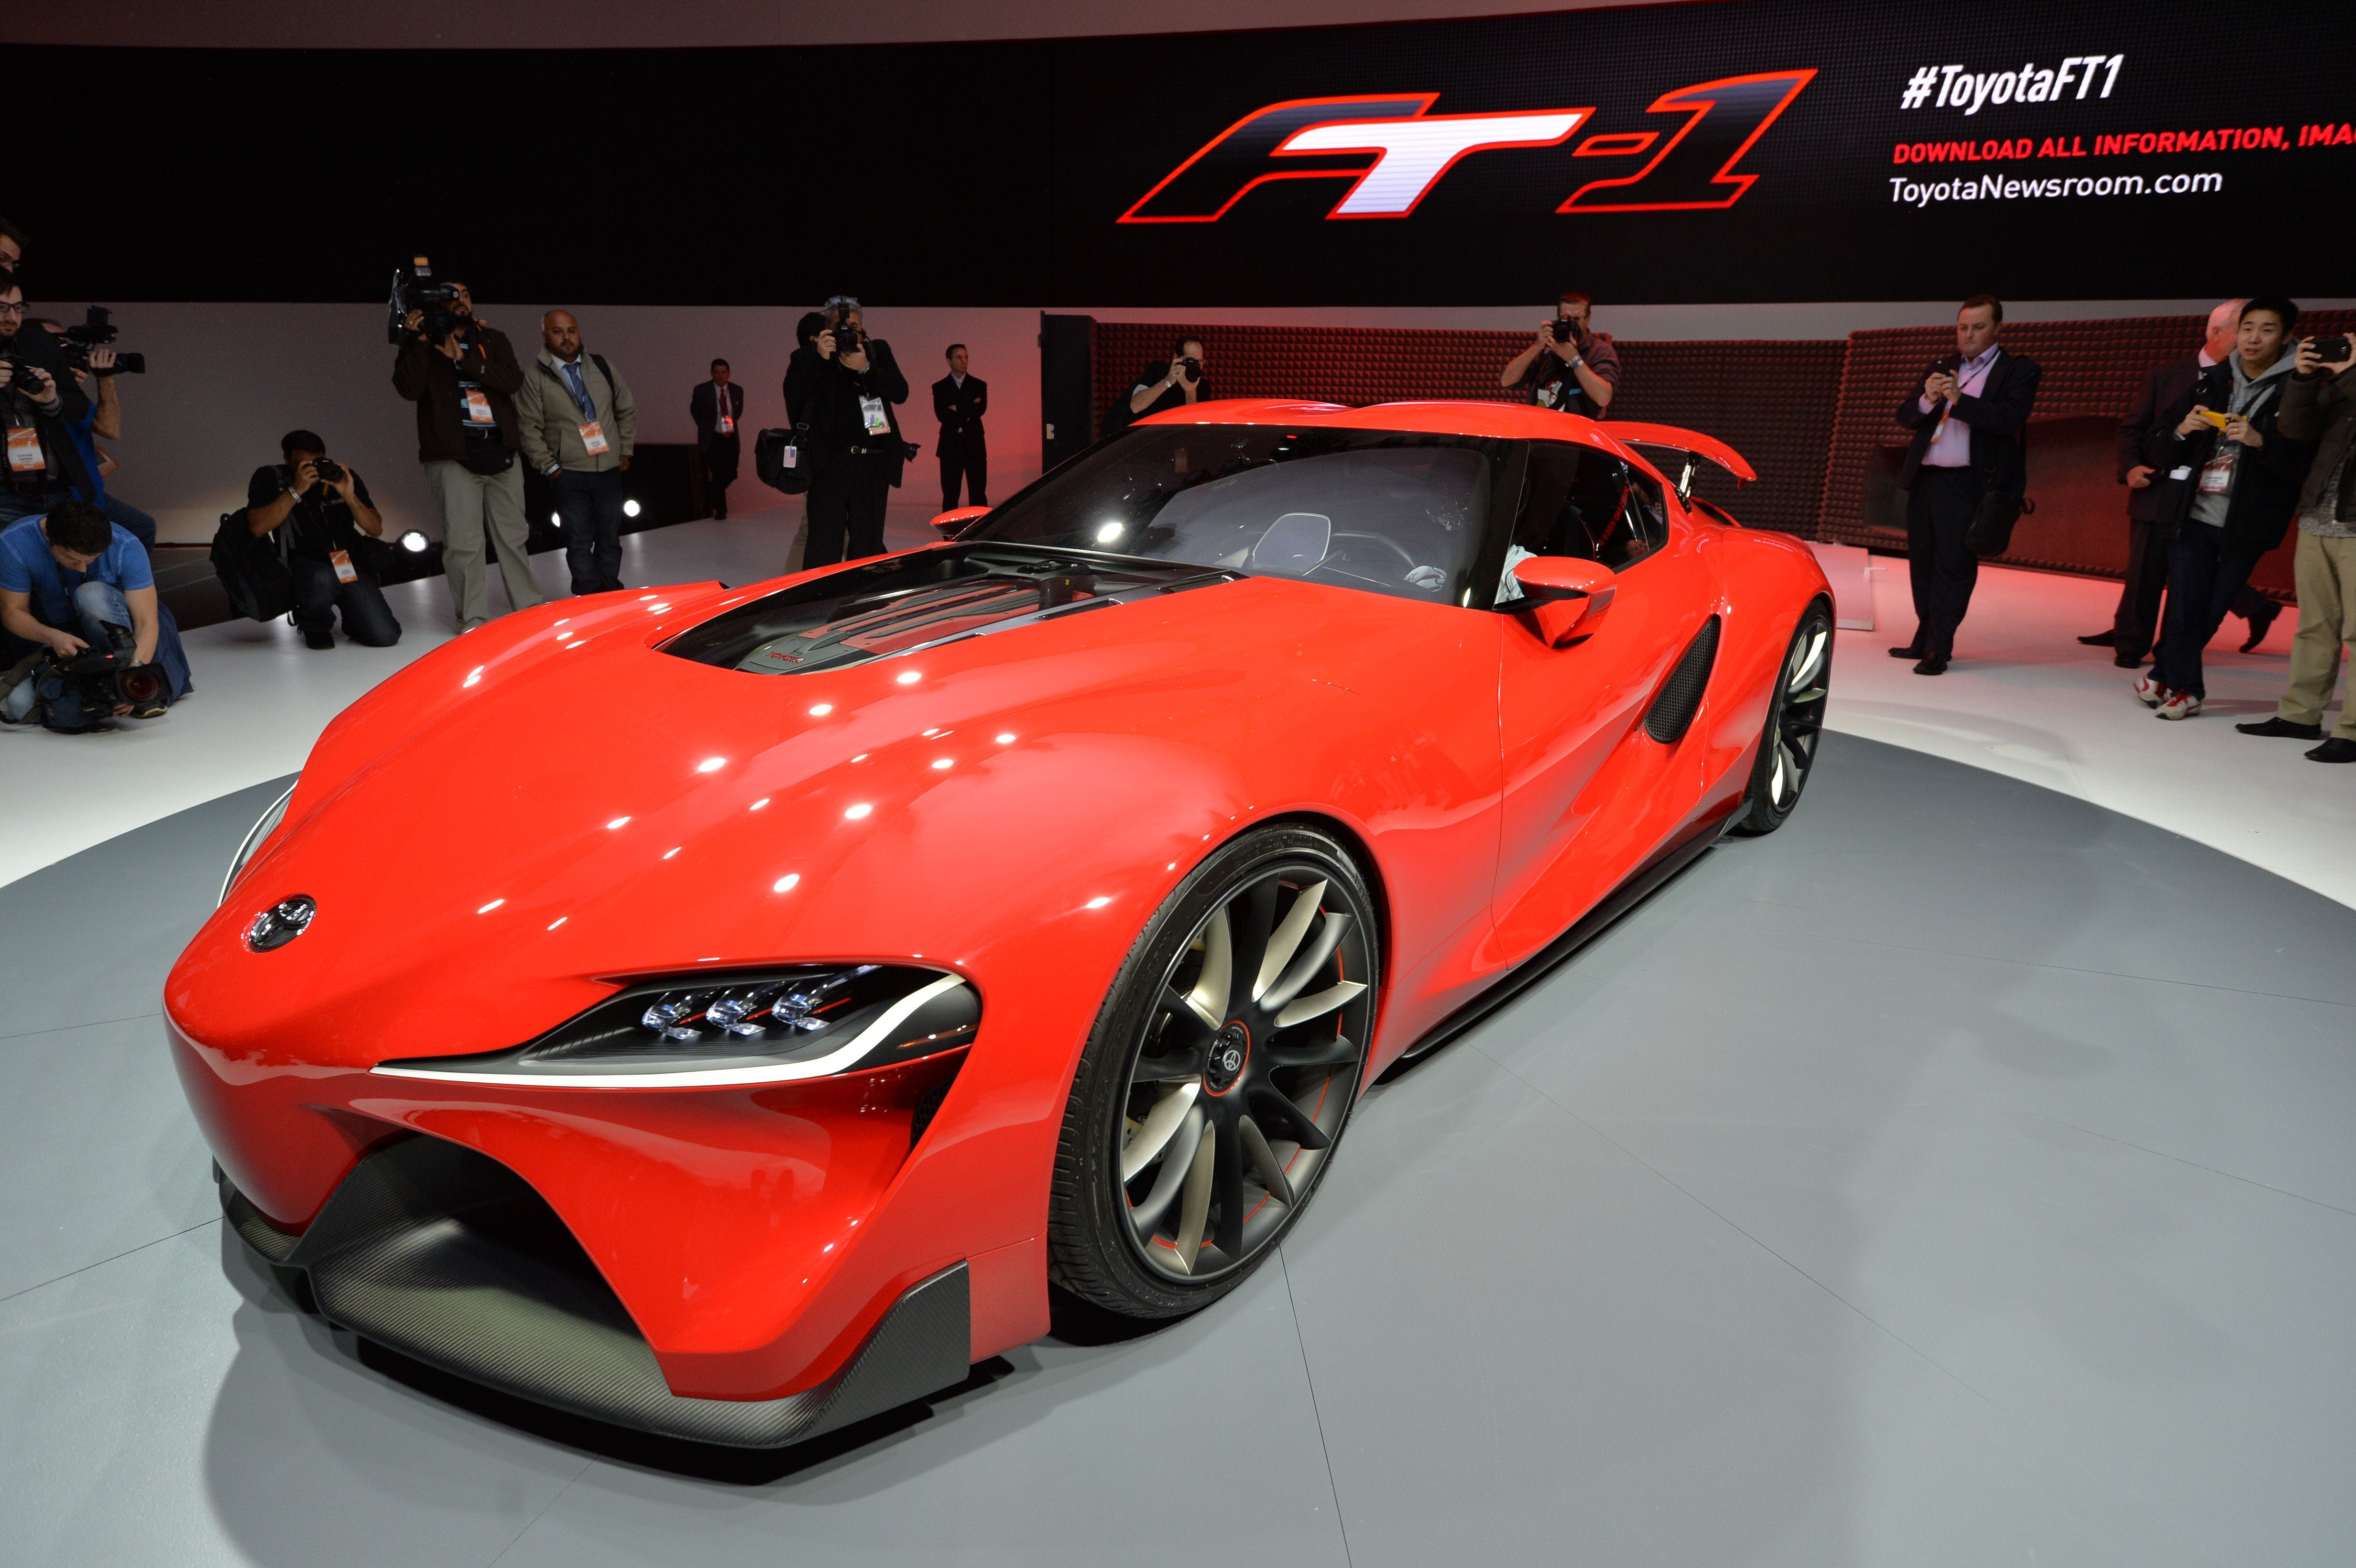 The Toyota ft 1 Concept